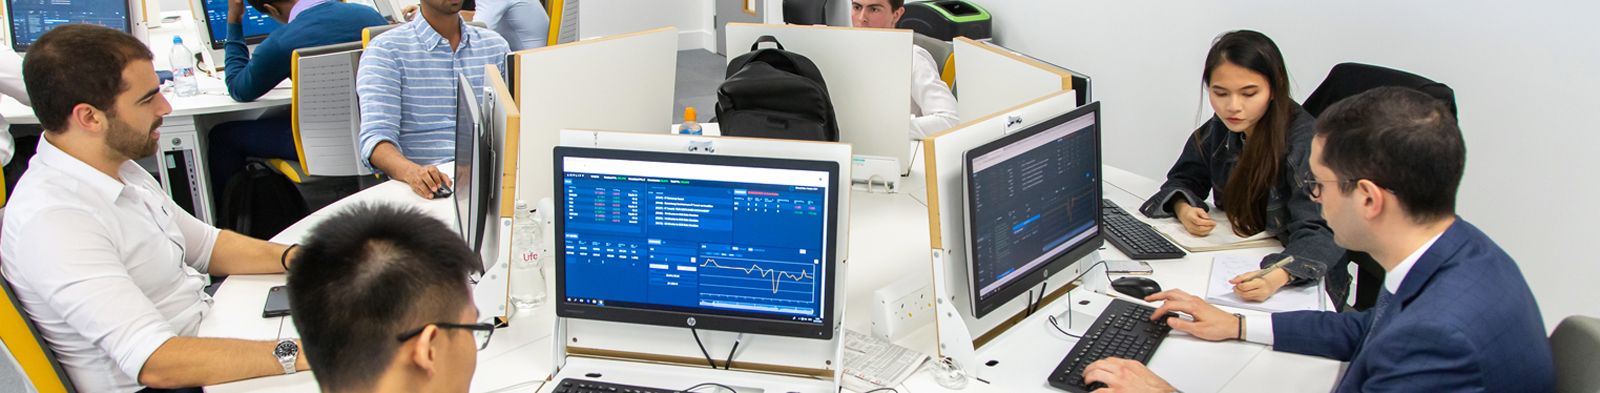 students sit around computer screens showing financial graphs